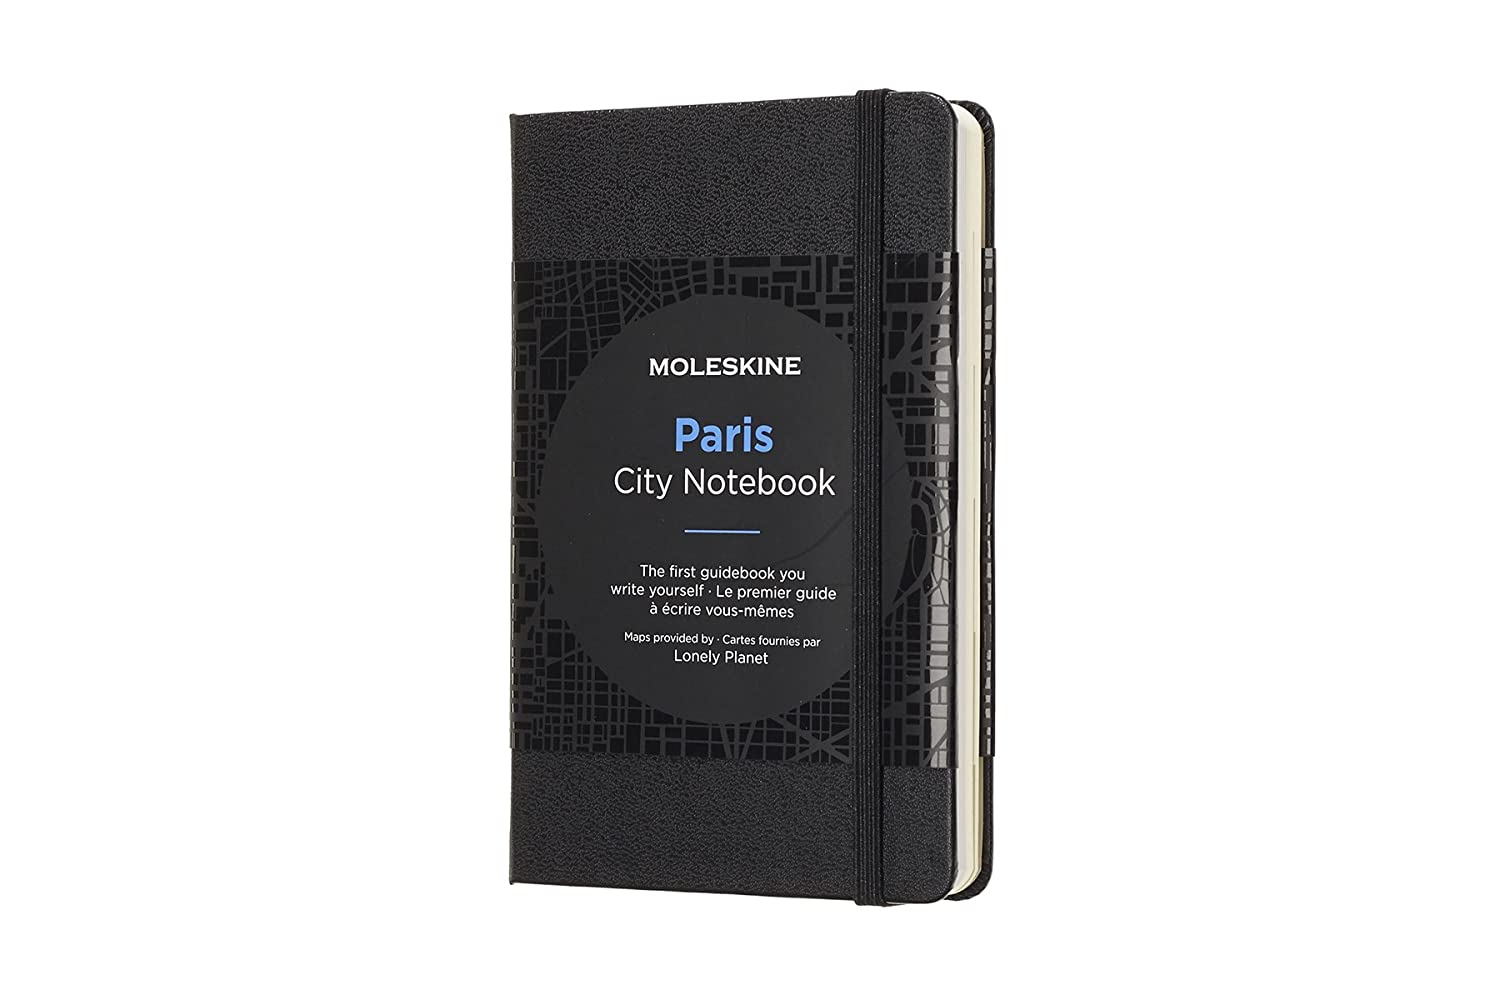 Moleskine City Notebook Paris, Pocket, Black, Hard Cover (3.5 x 5.5) CNPAR NON-CLASSIFIABLE Travel/Europe - France